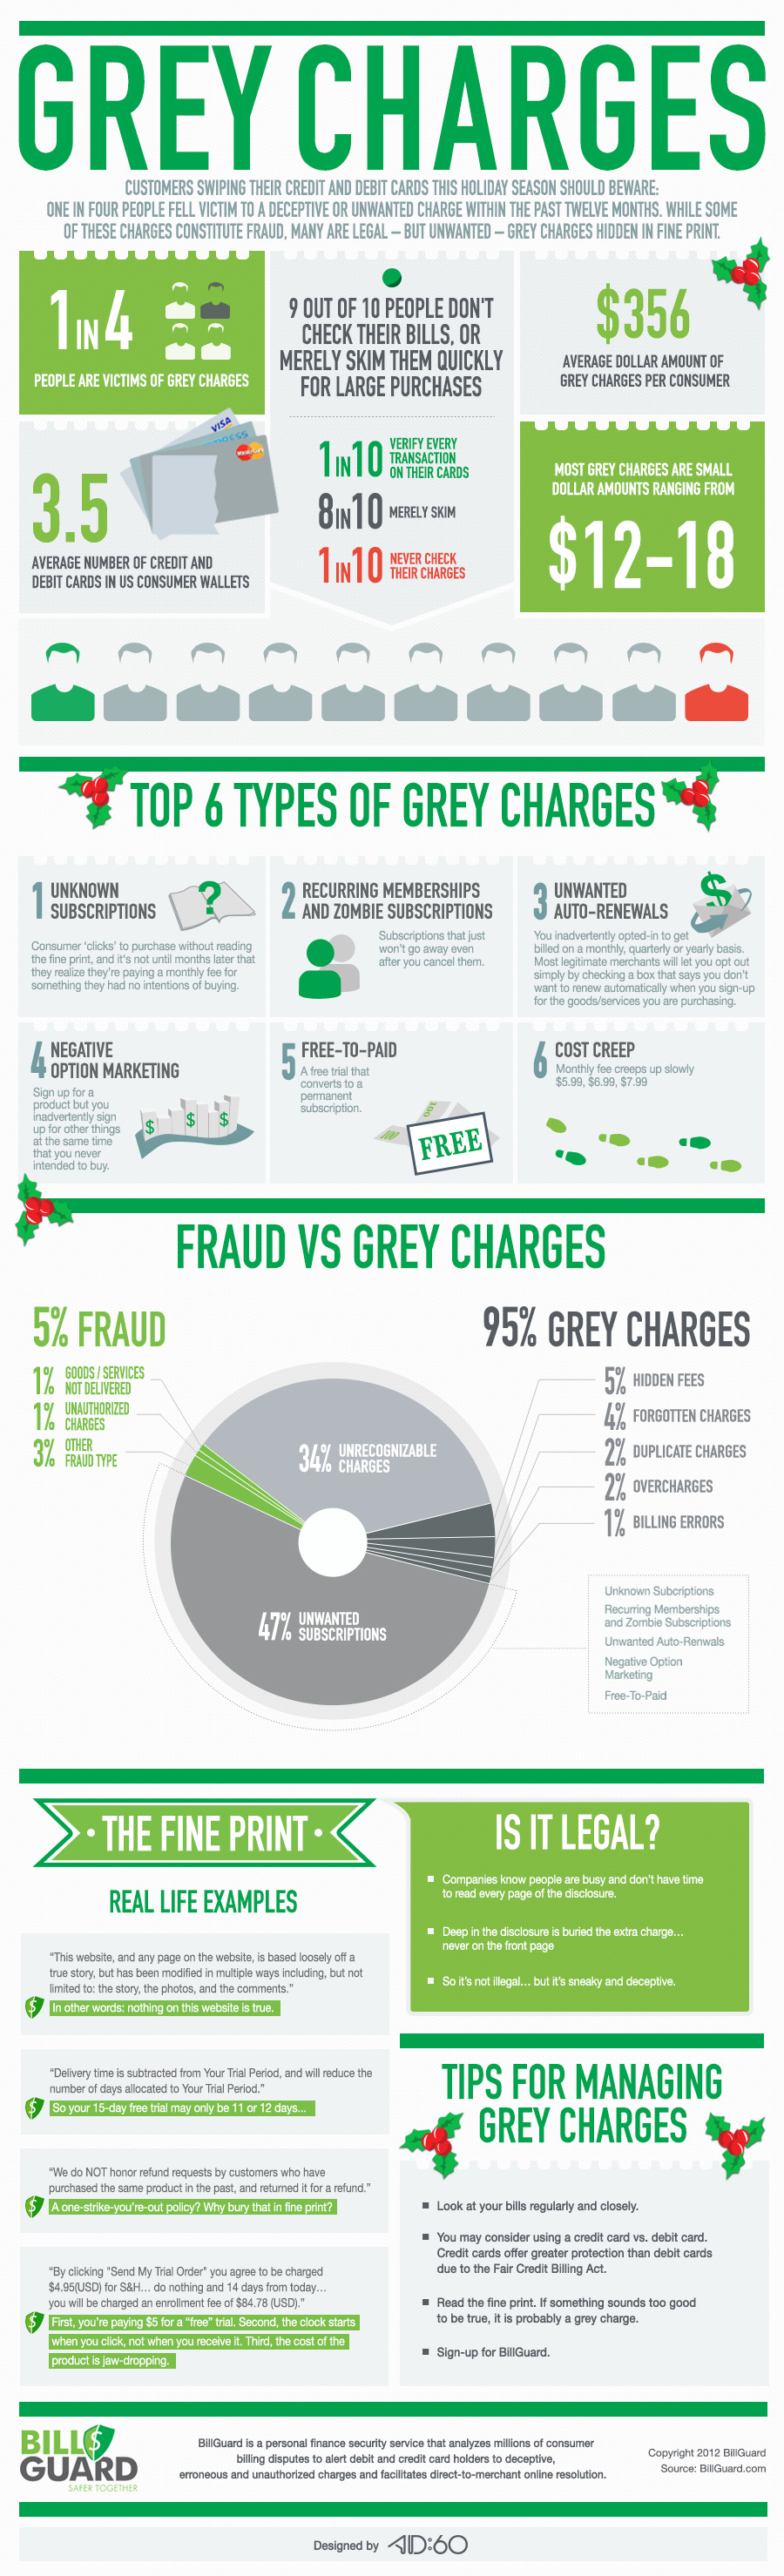 grey charges